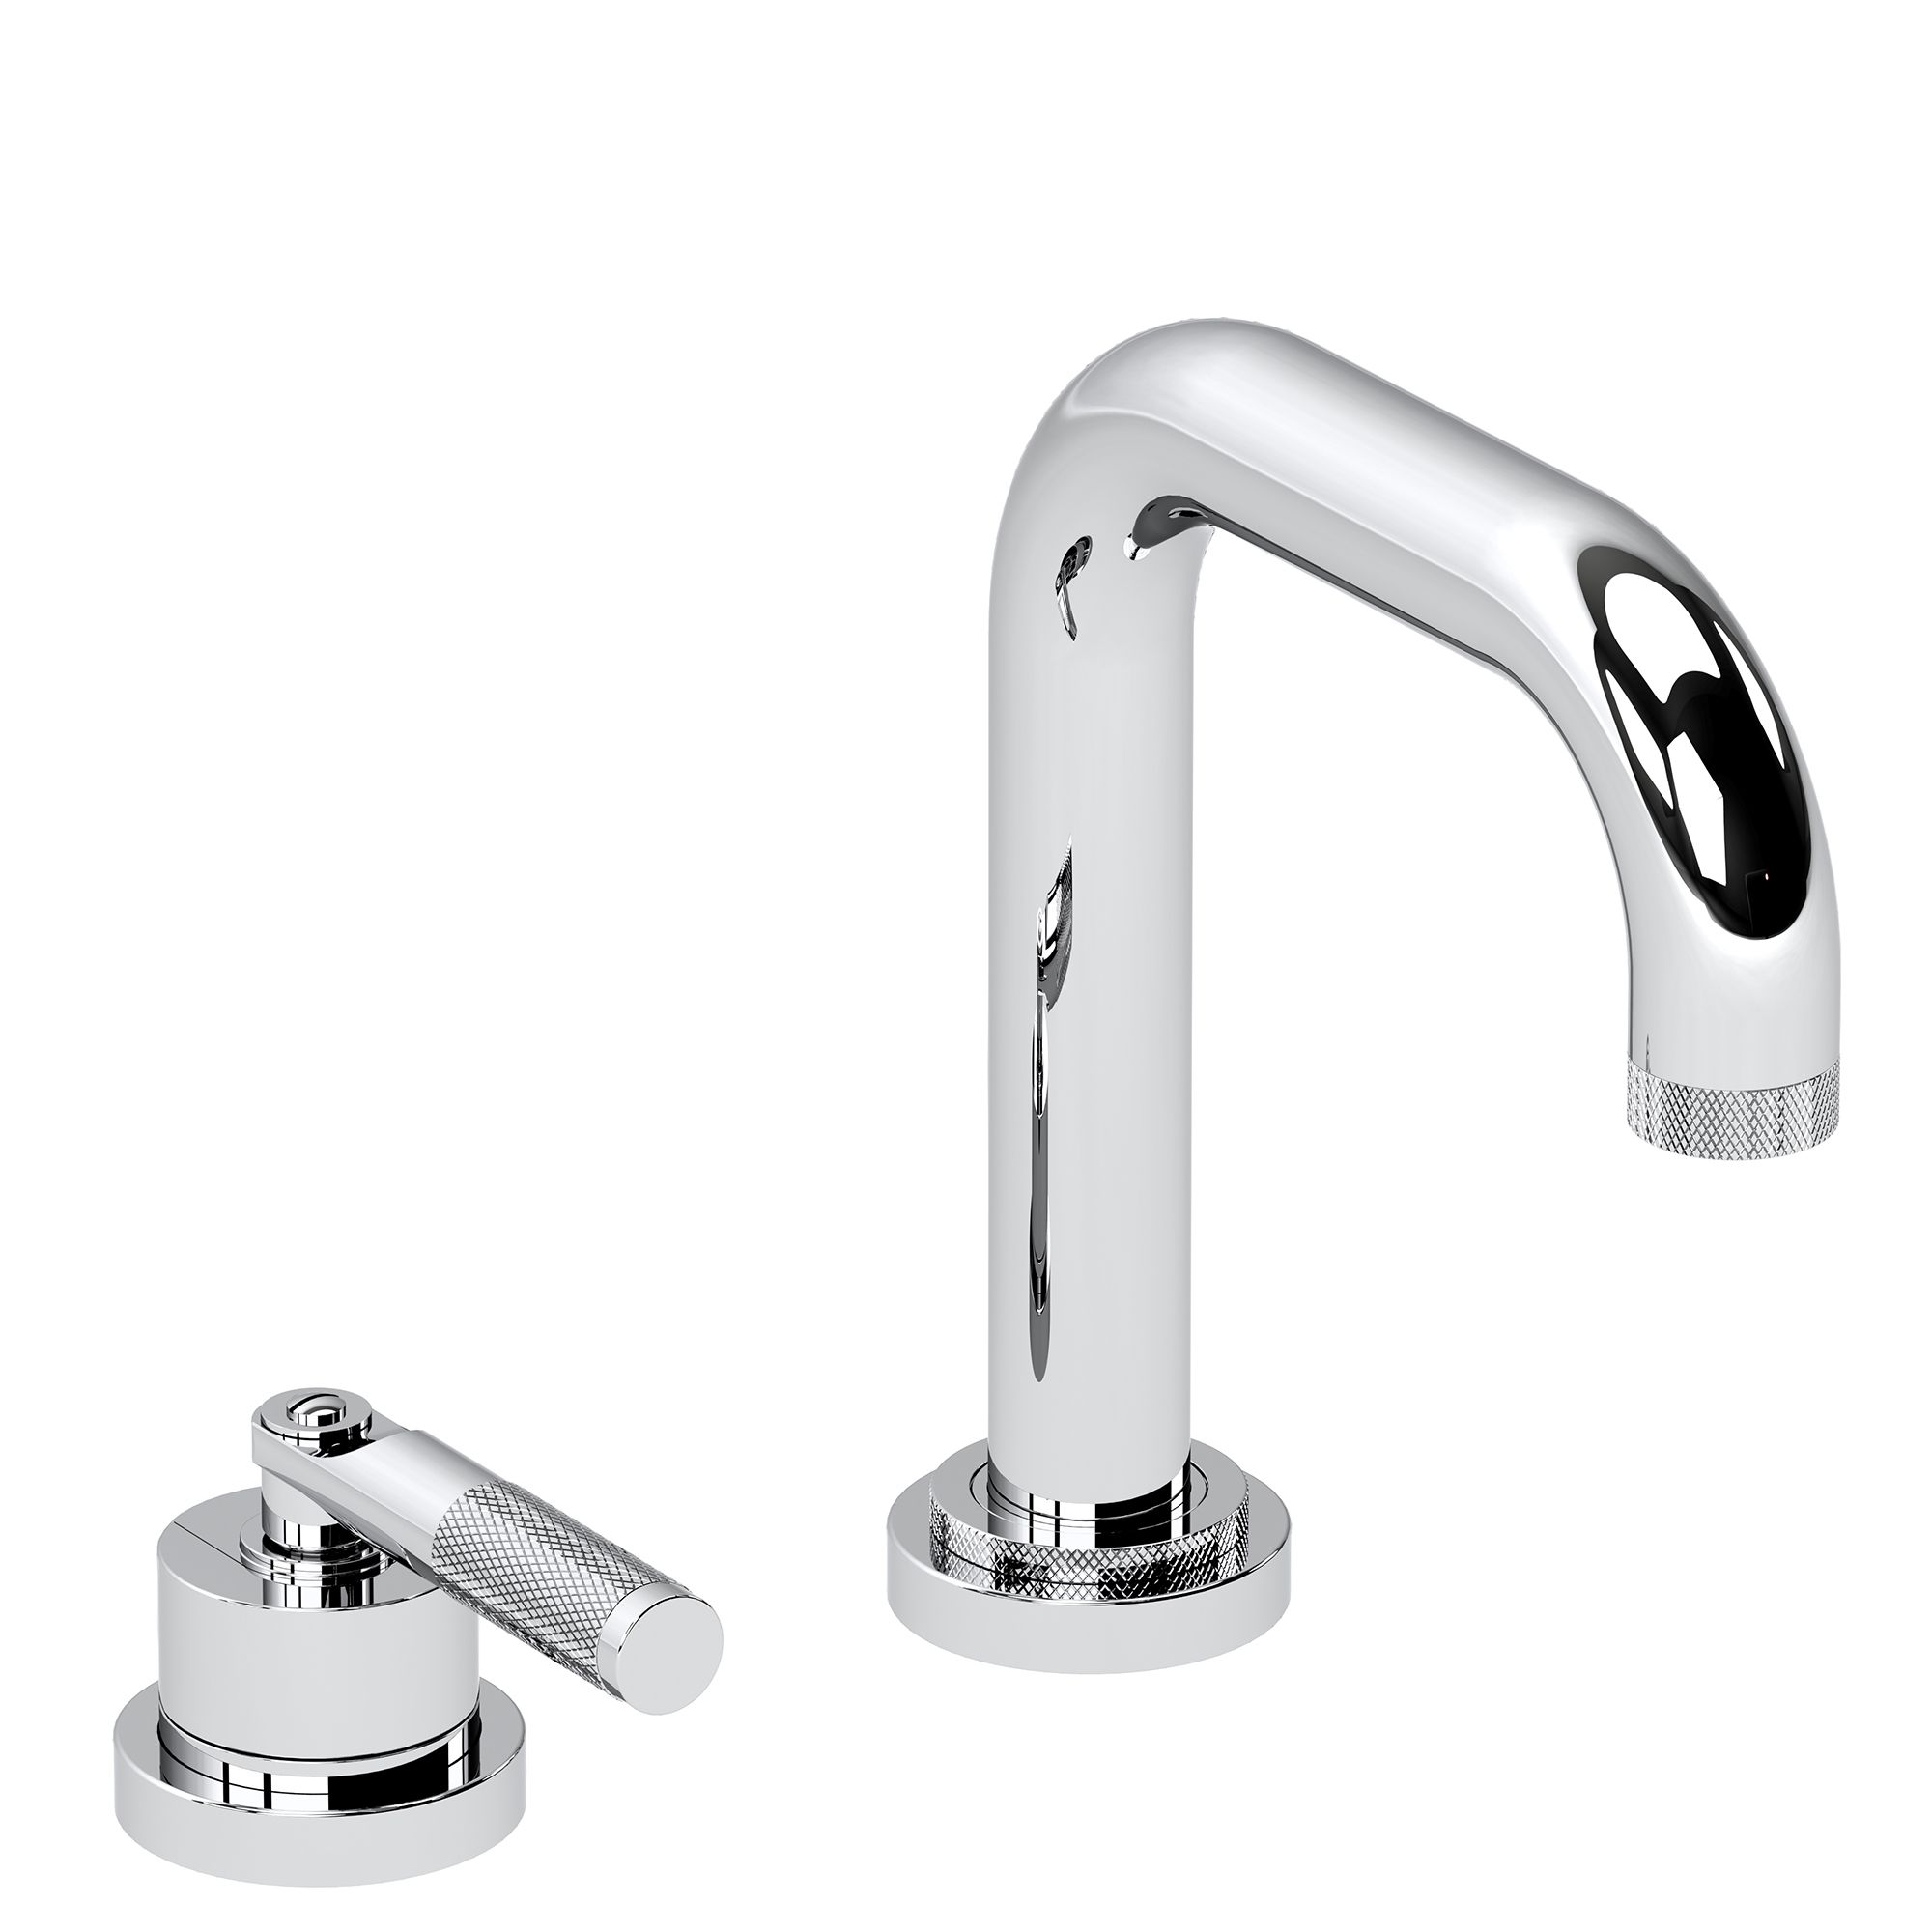 Haus Modernist 2 Hole Basin Mixer